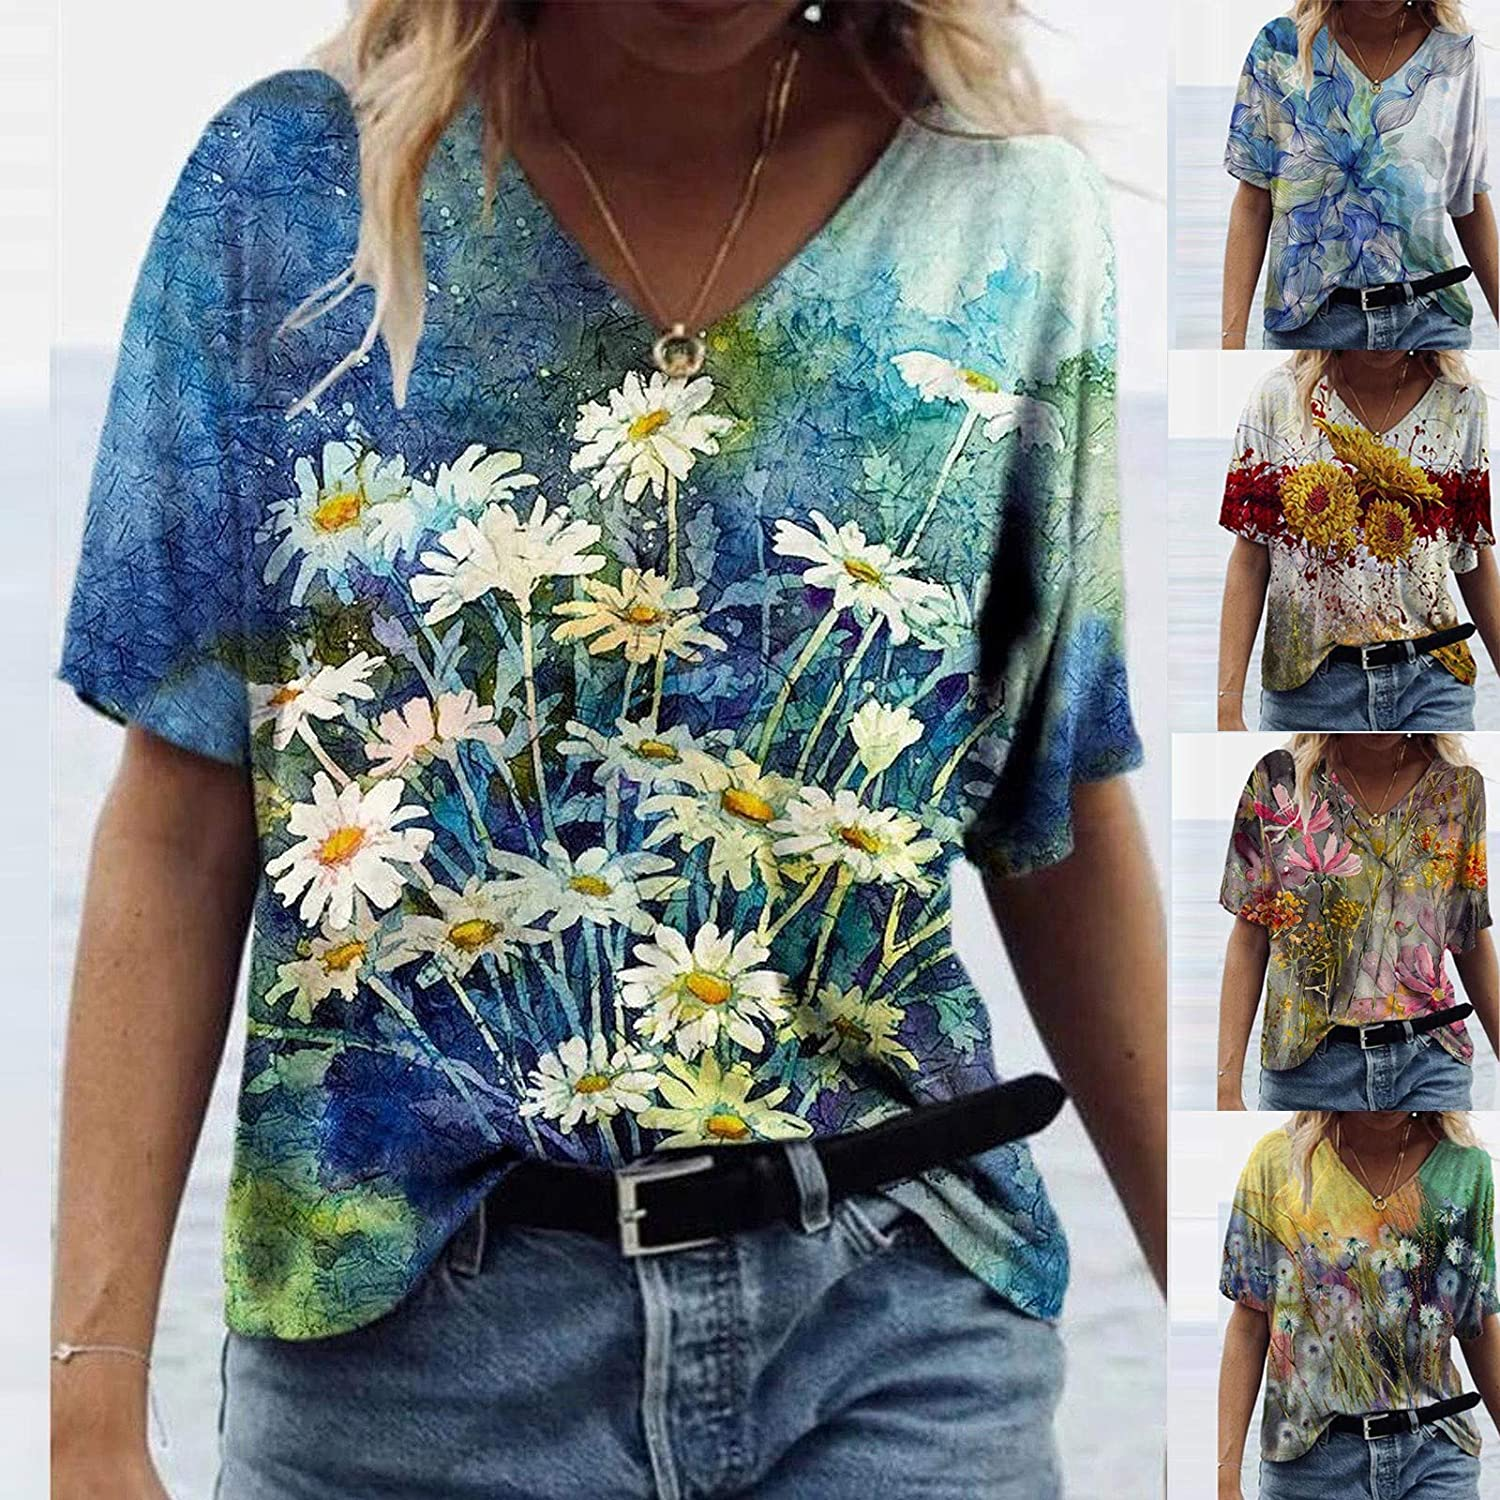 AODONG Summer Tops for Women Short Sleeve, Womens Casual Floral Print Tees Shirt V Neck Funny Shirts Tunics Blouses